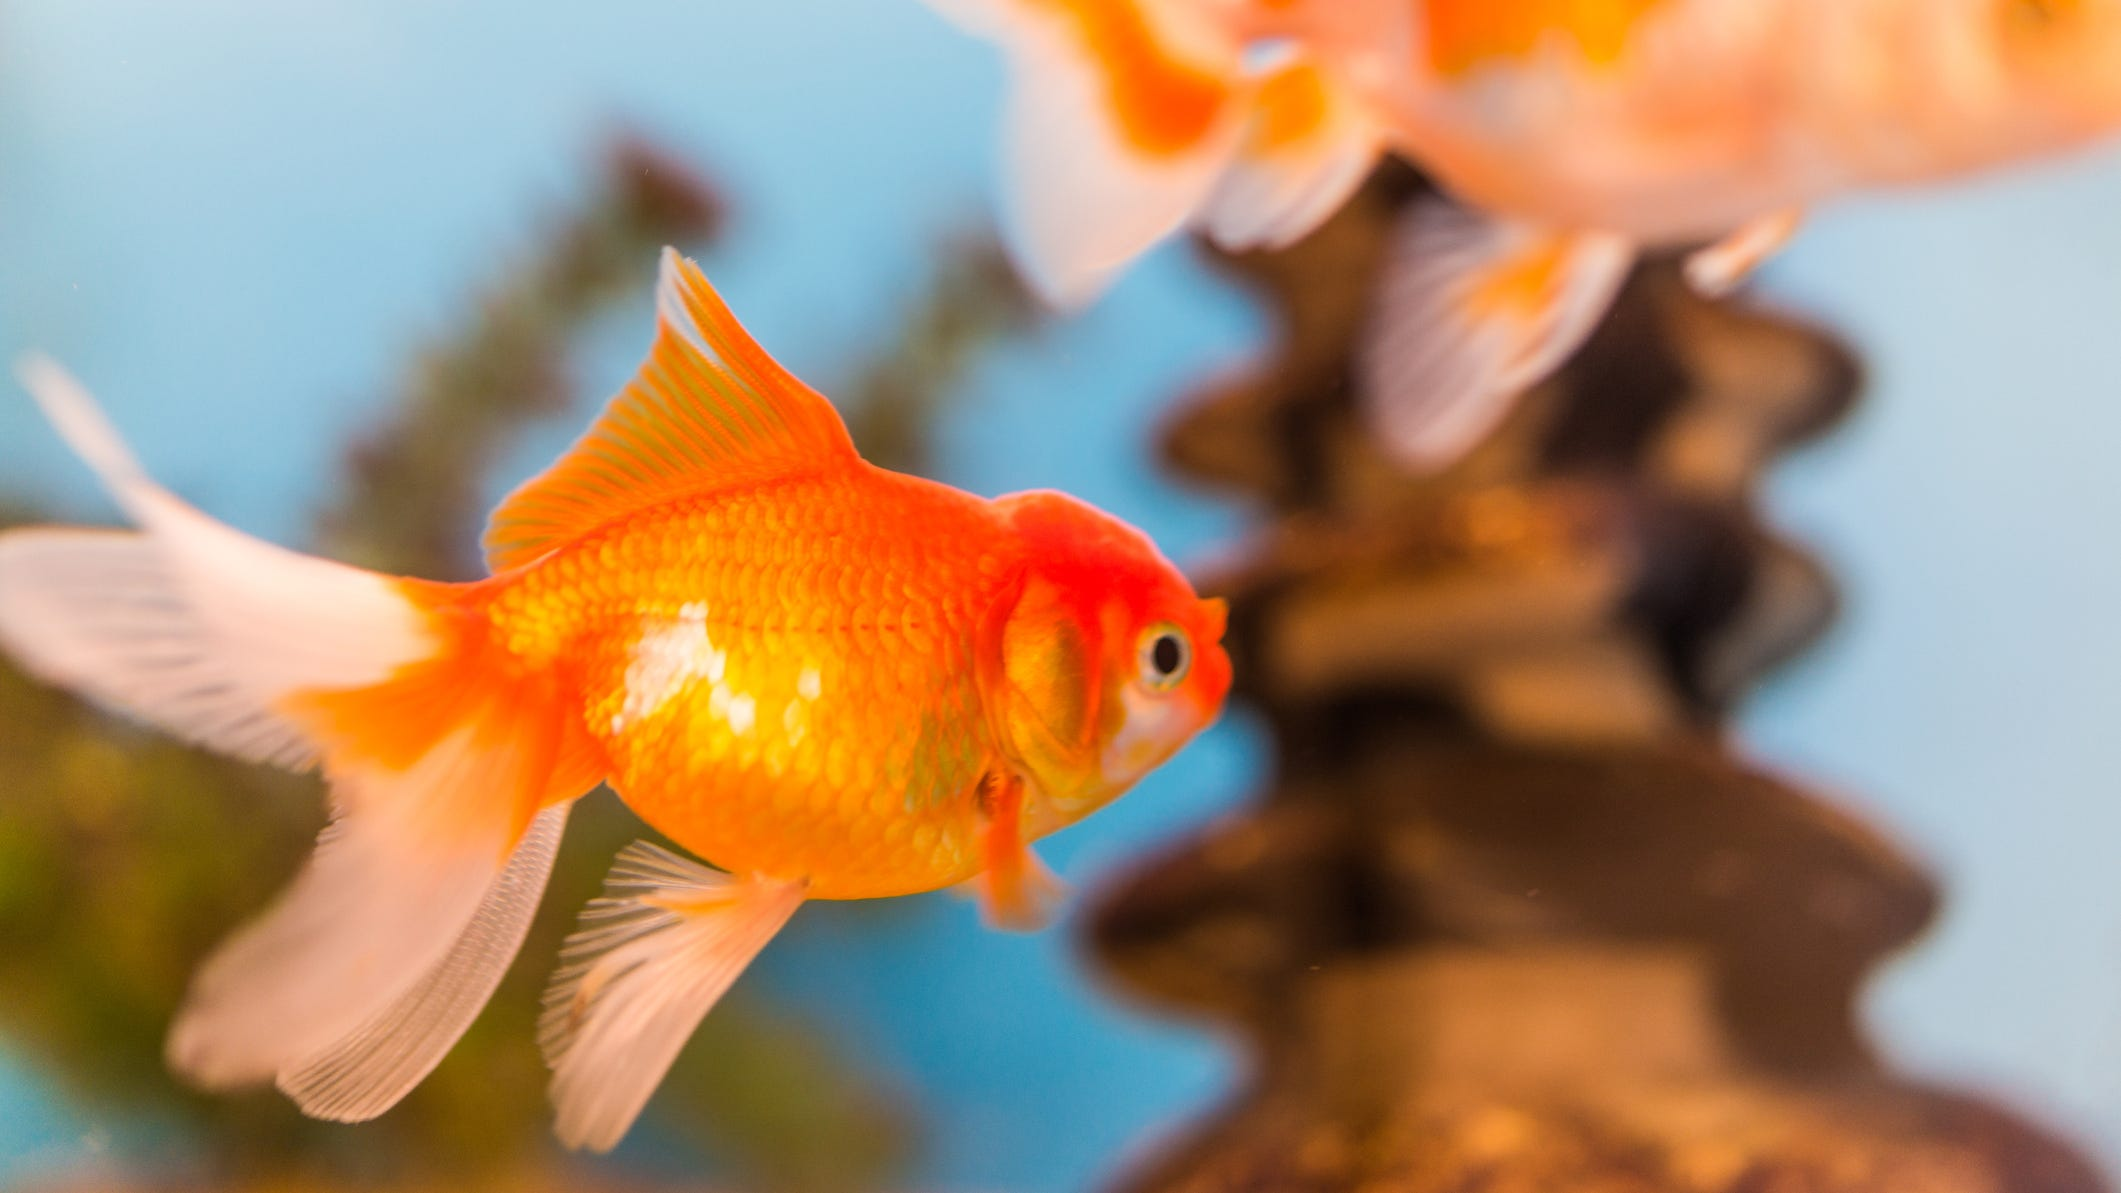 Why you should never release goldfish into the wild [SHOCKING PHOTOS]